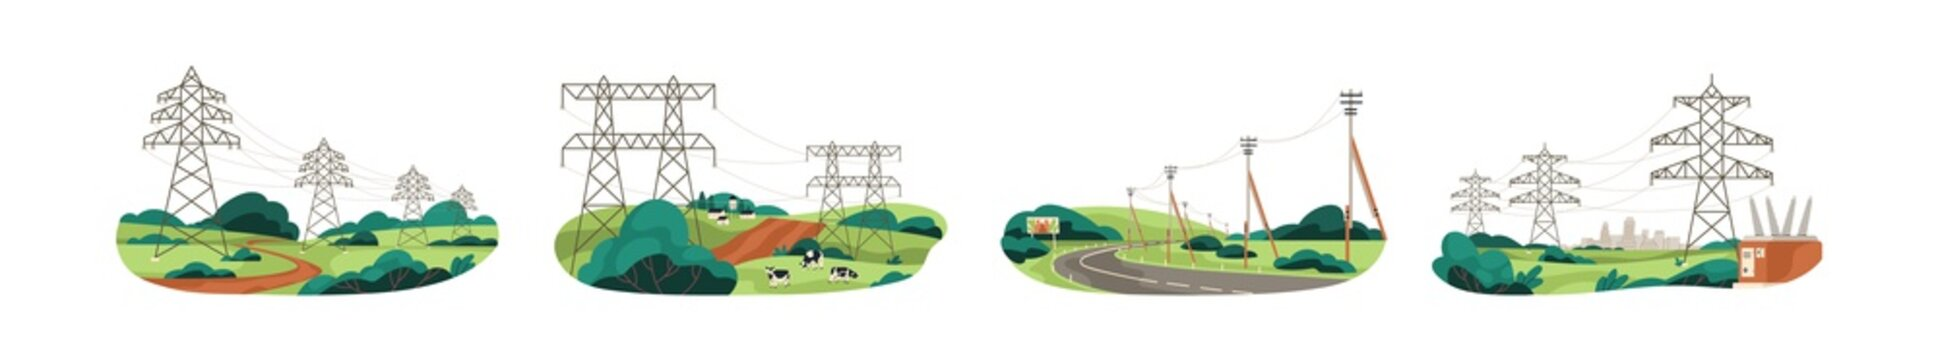 Set of city and nature landscapes with high-voltage electric power towers for energy transmission and distribution. Colored flat vector illustration of powerline network isolated on white background